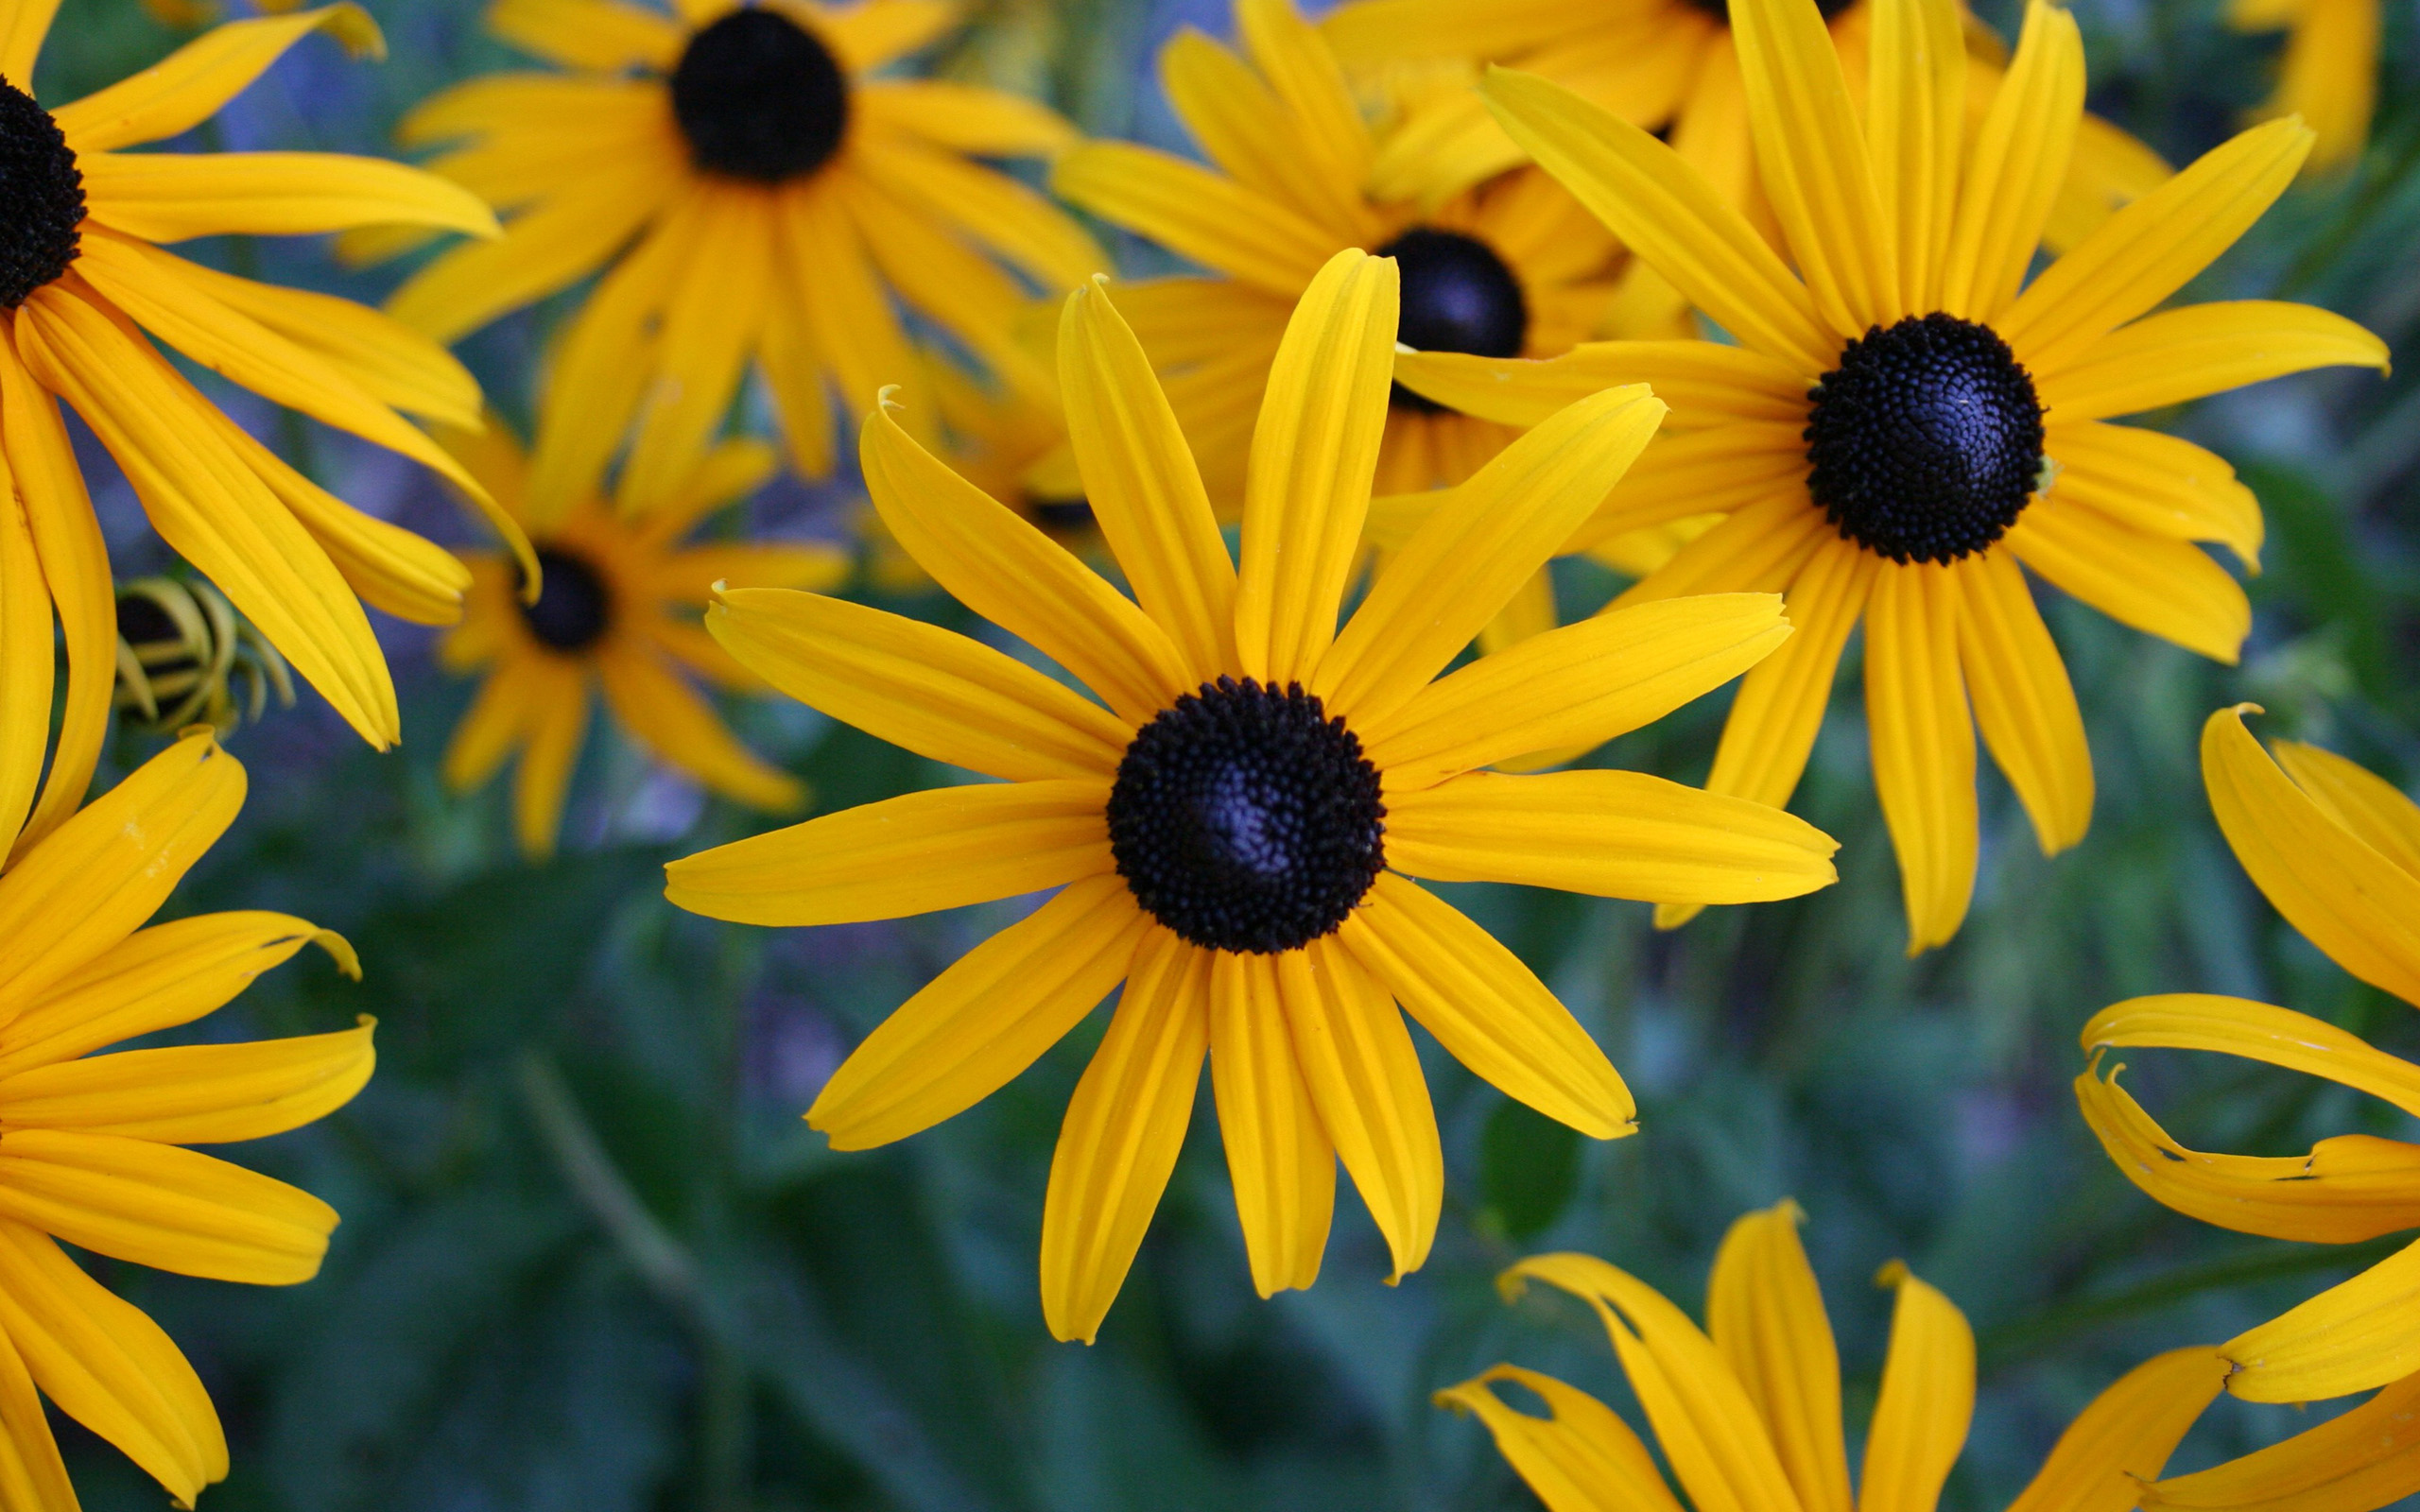 Yellow Flowered Wallpaper with Black Eyed Susan Flower ... Yellow Black Flowers Wallpaper